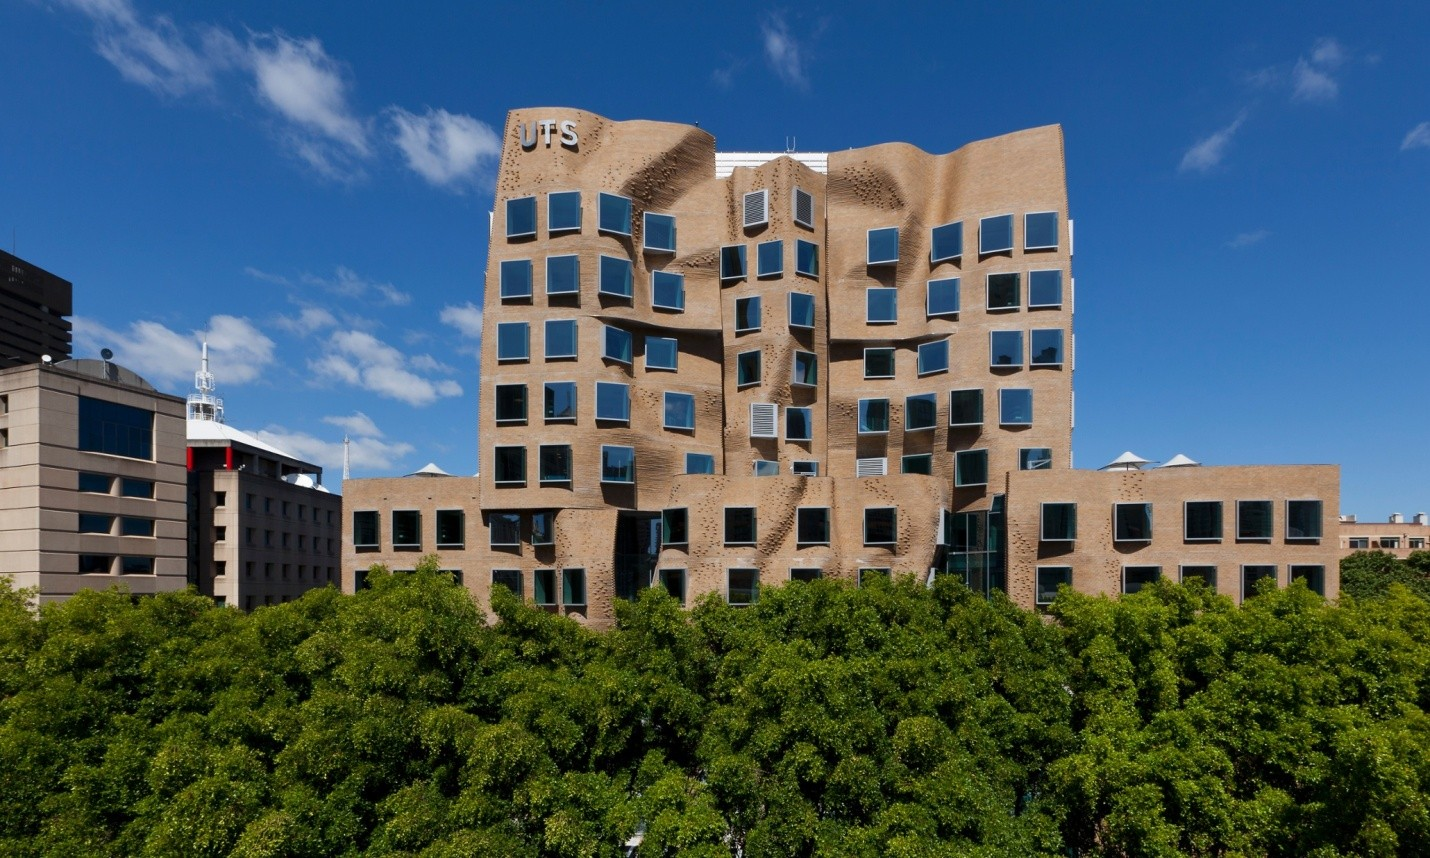 As 4 reações mais divertidas sobre a UTS Business School de Frank Gehry, © Andrew Worssam via The Guardian